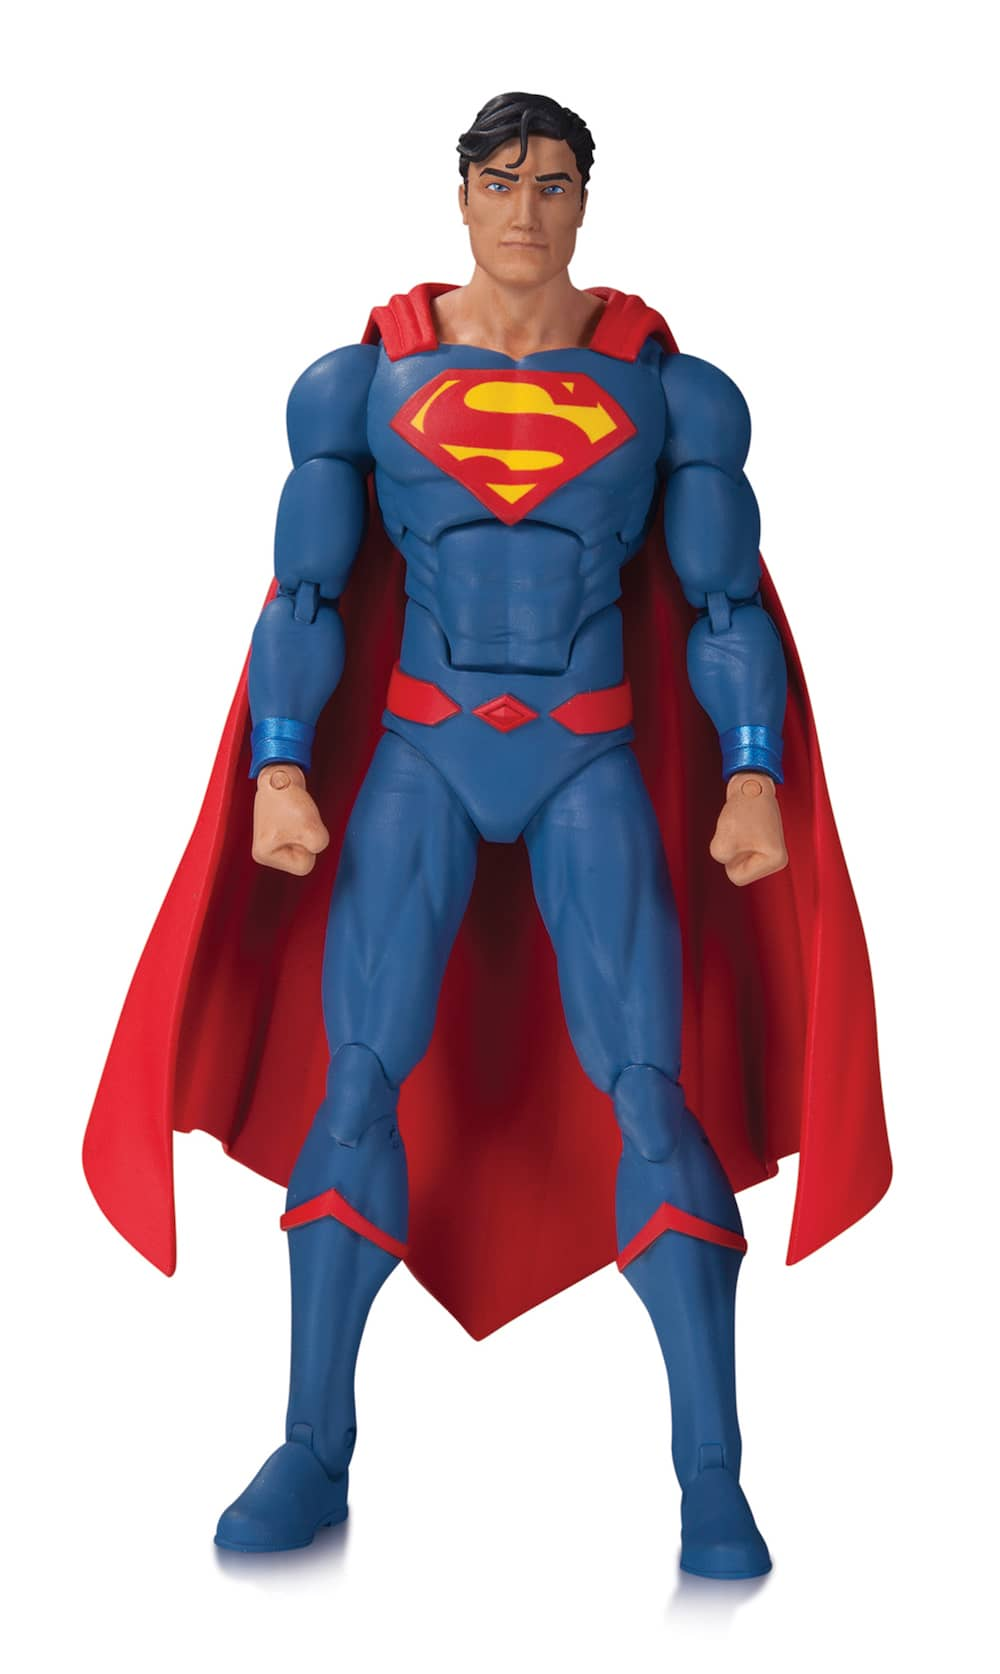 SUPERMAN REBIRTH FIGURA 16 CM BATMAN DC ICONS